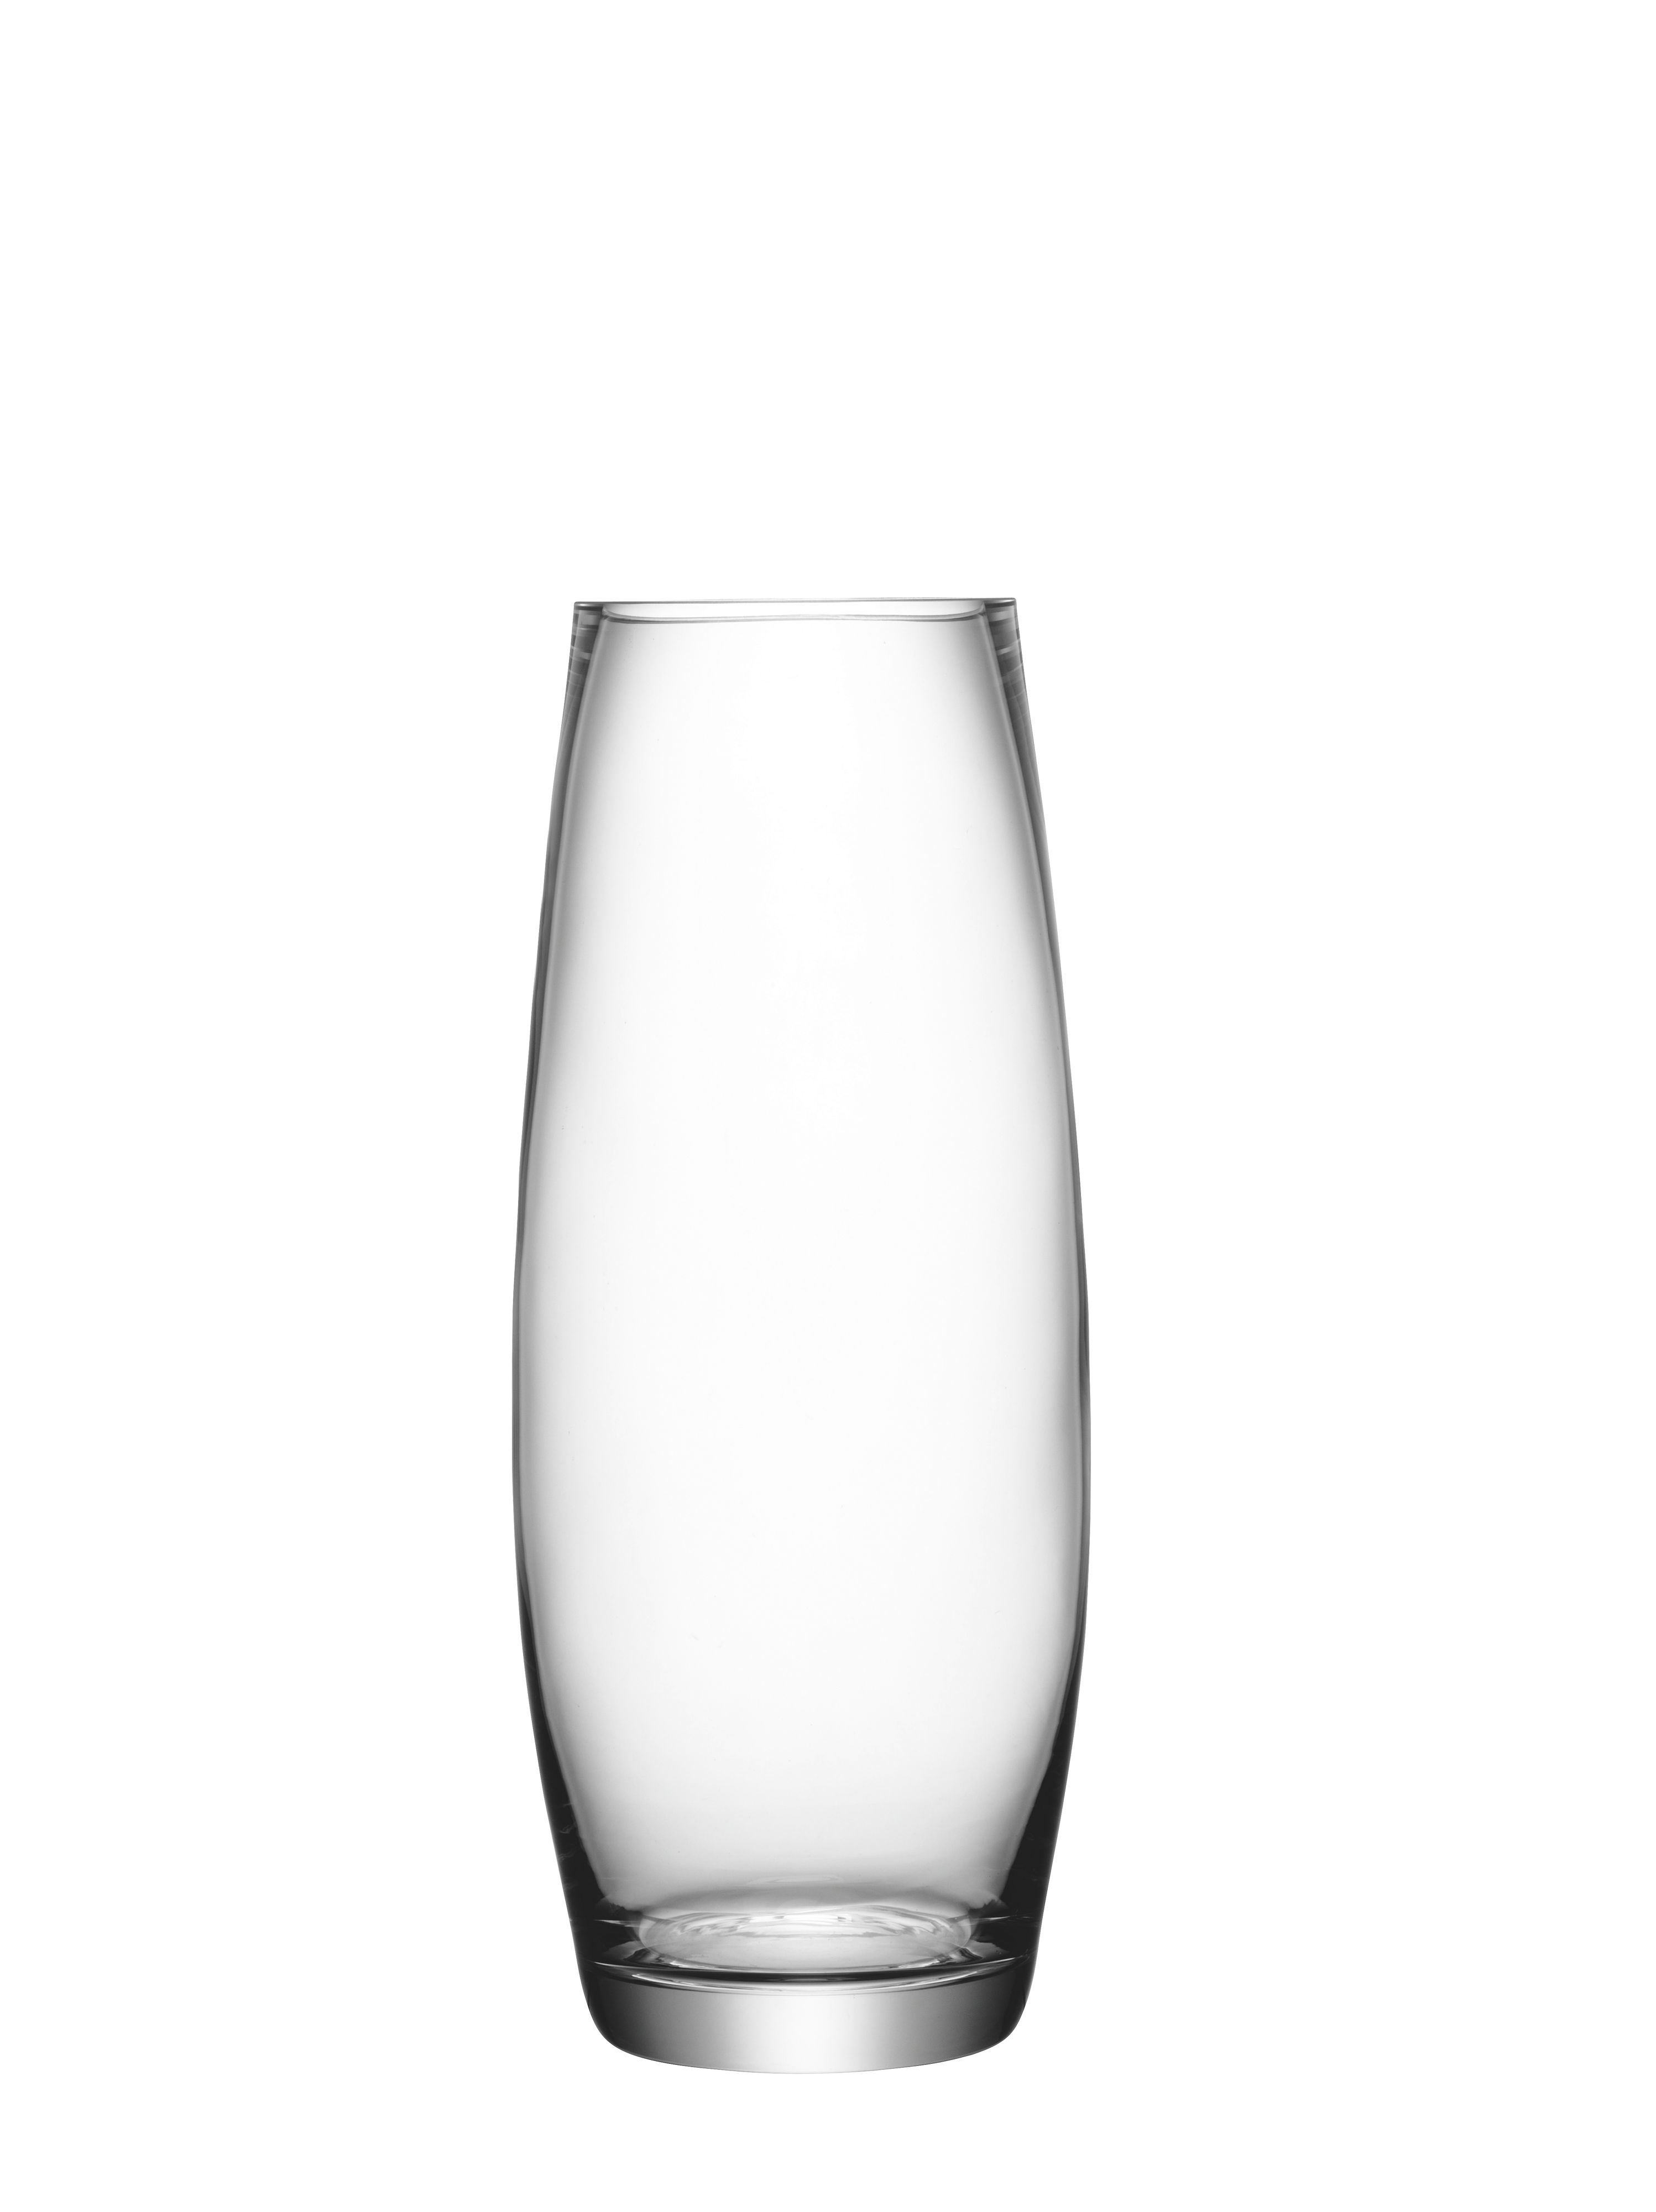 Grand stem vase, clear, 41cm